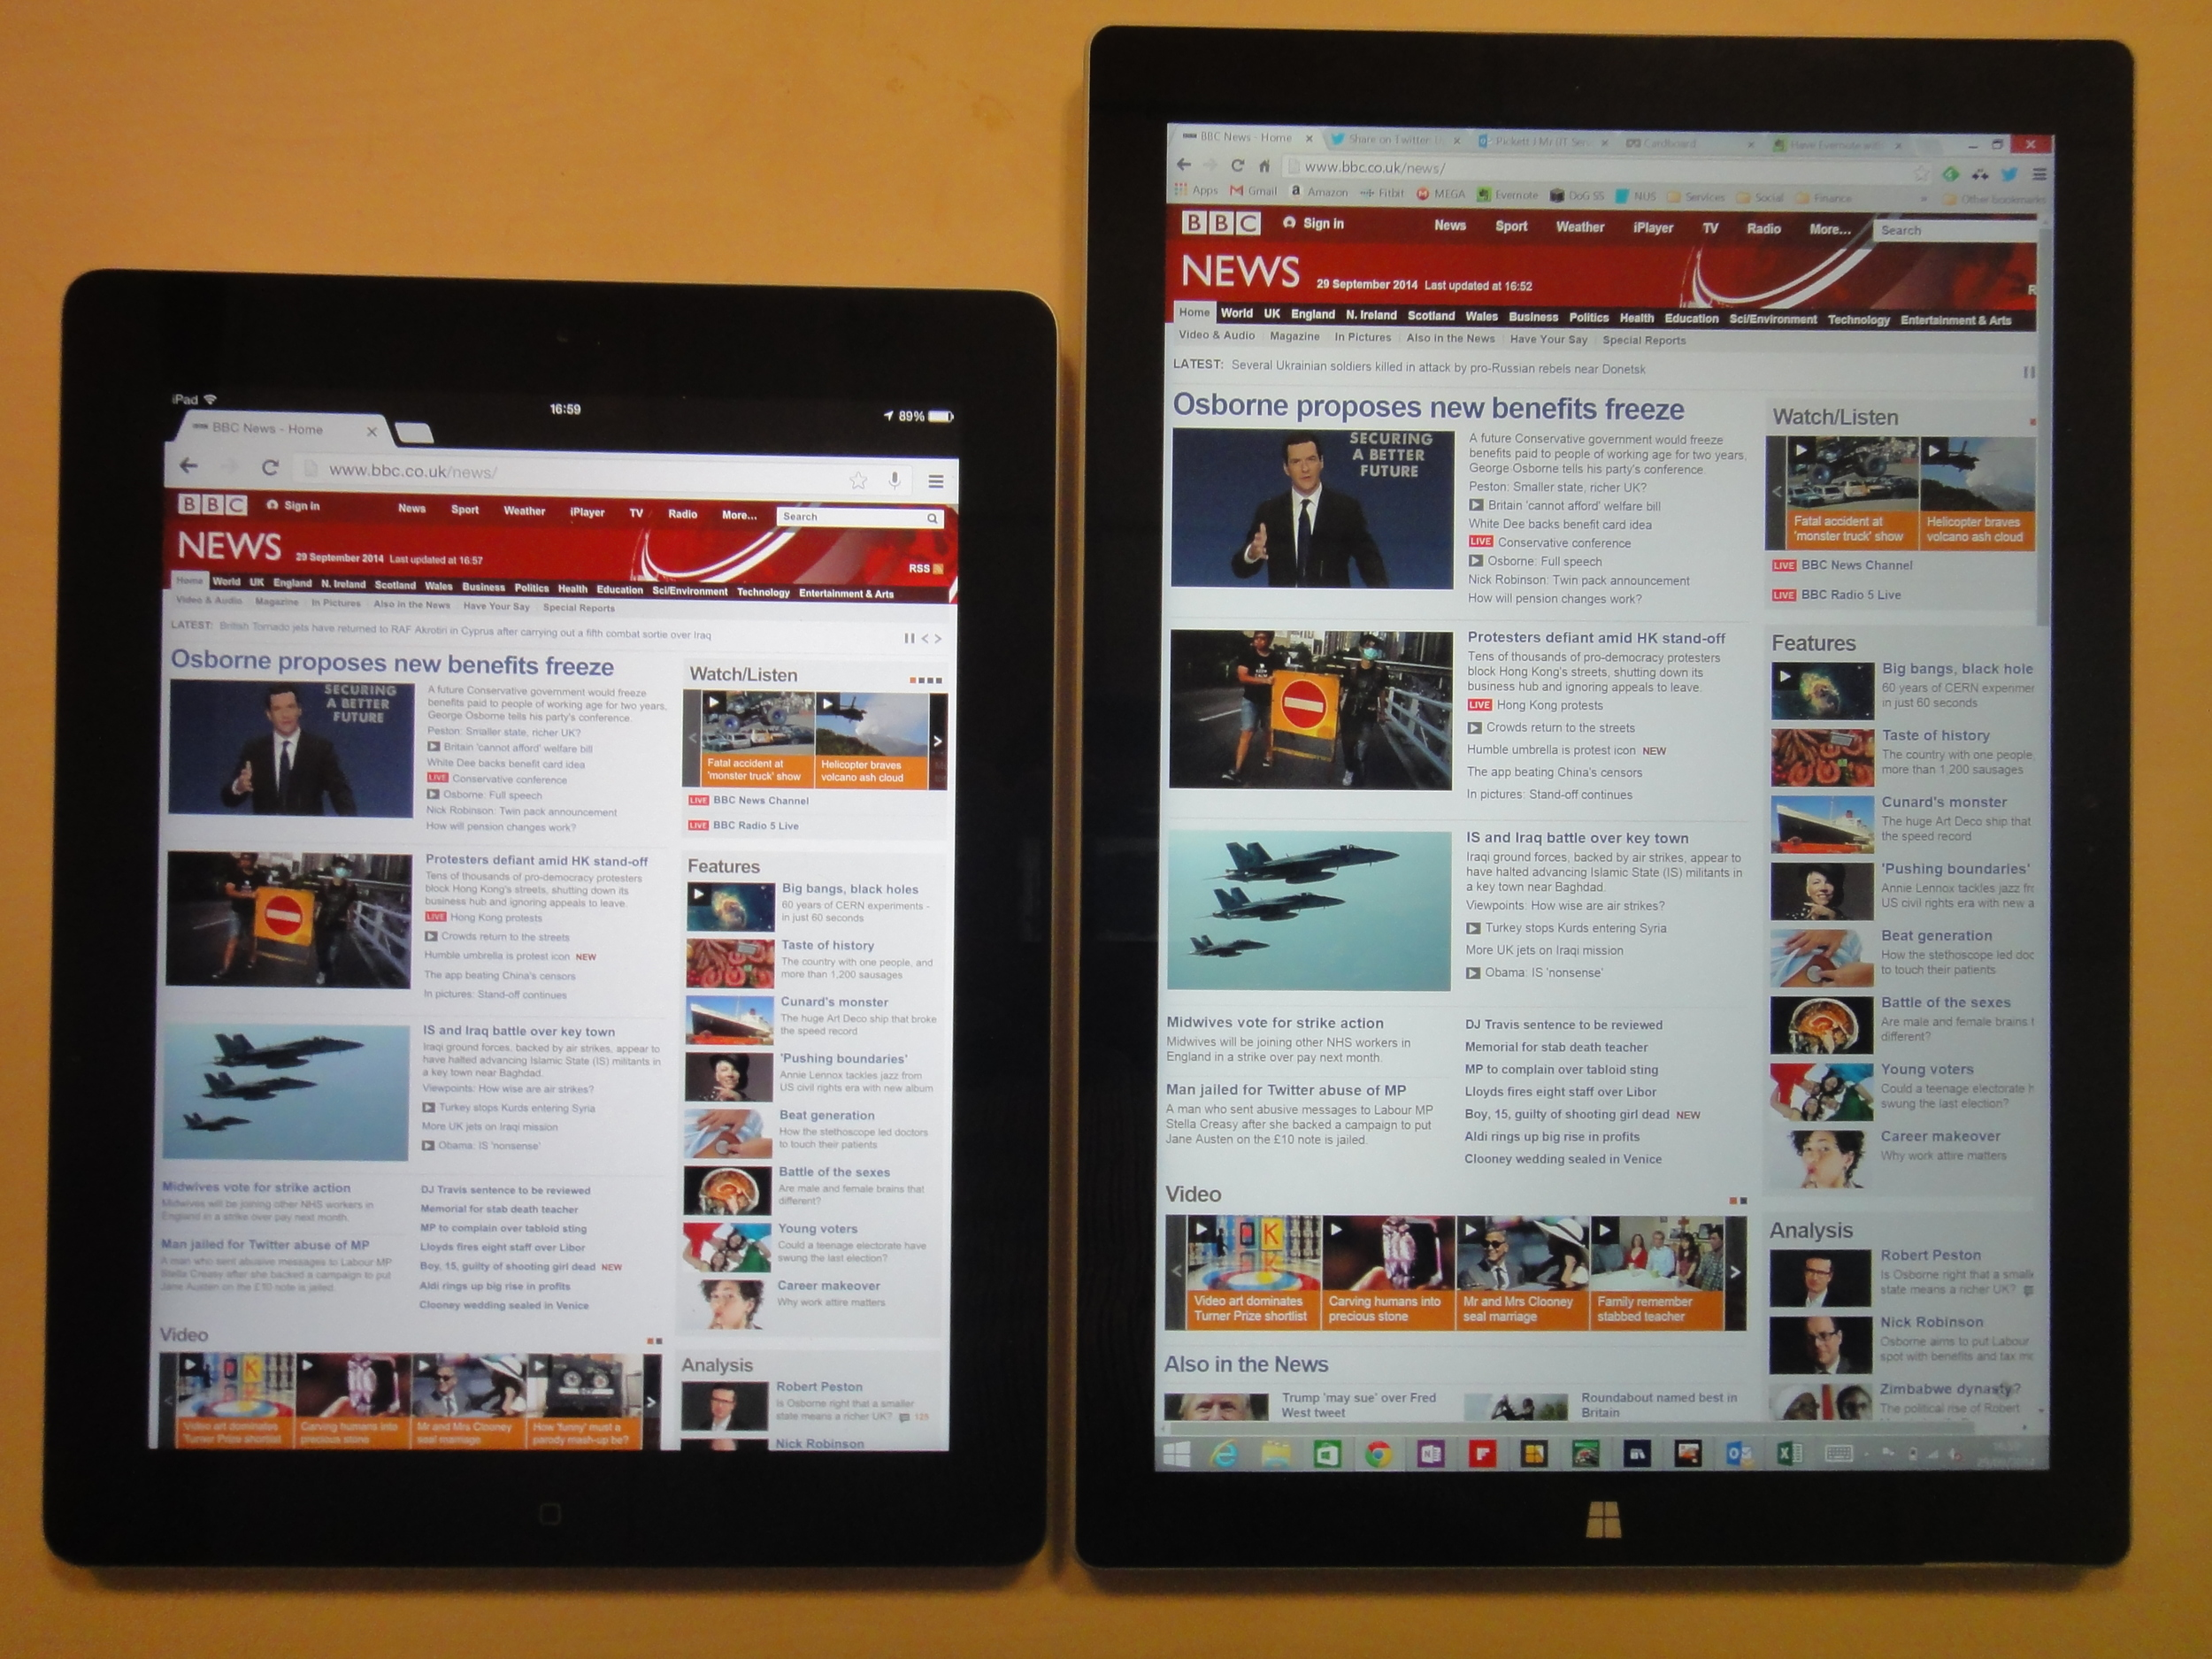 iPad Vs Surface 3